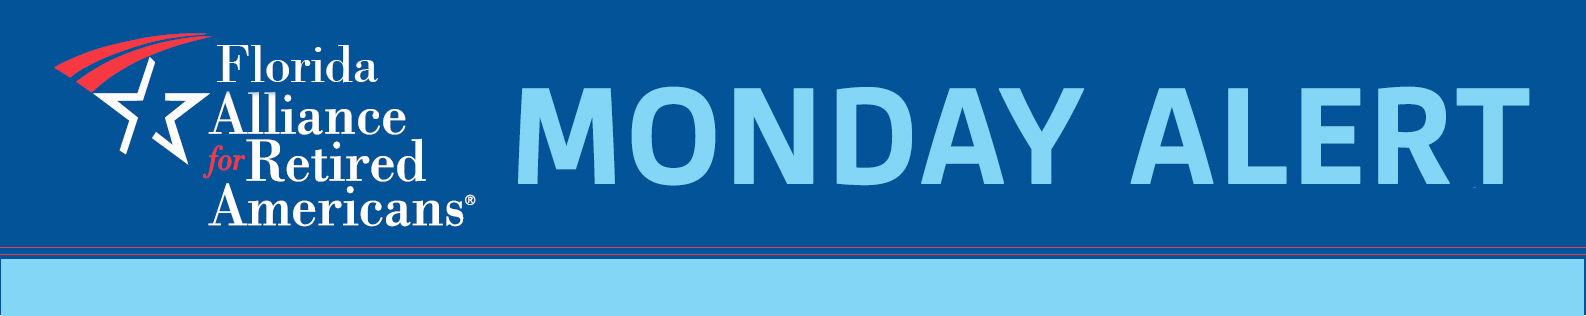 Florida Alliance for Retired Americans Monday Alert banner